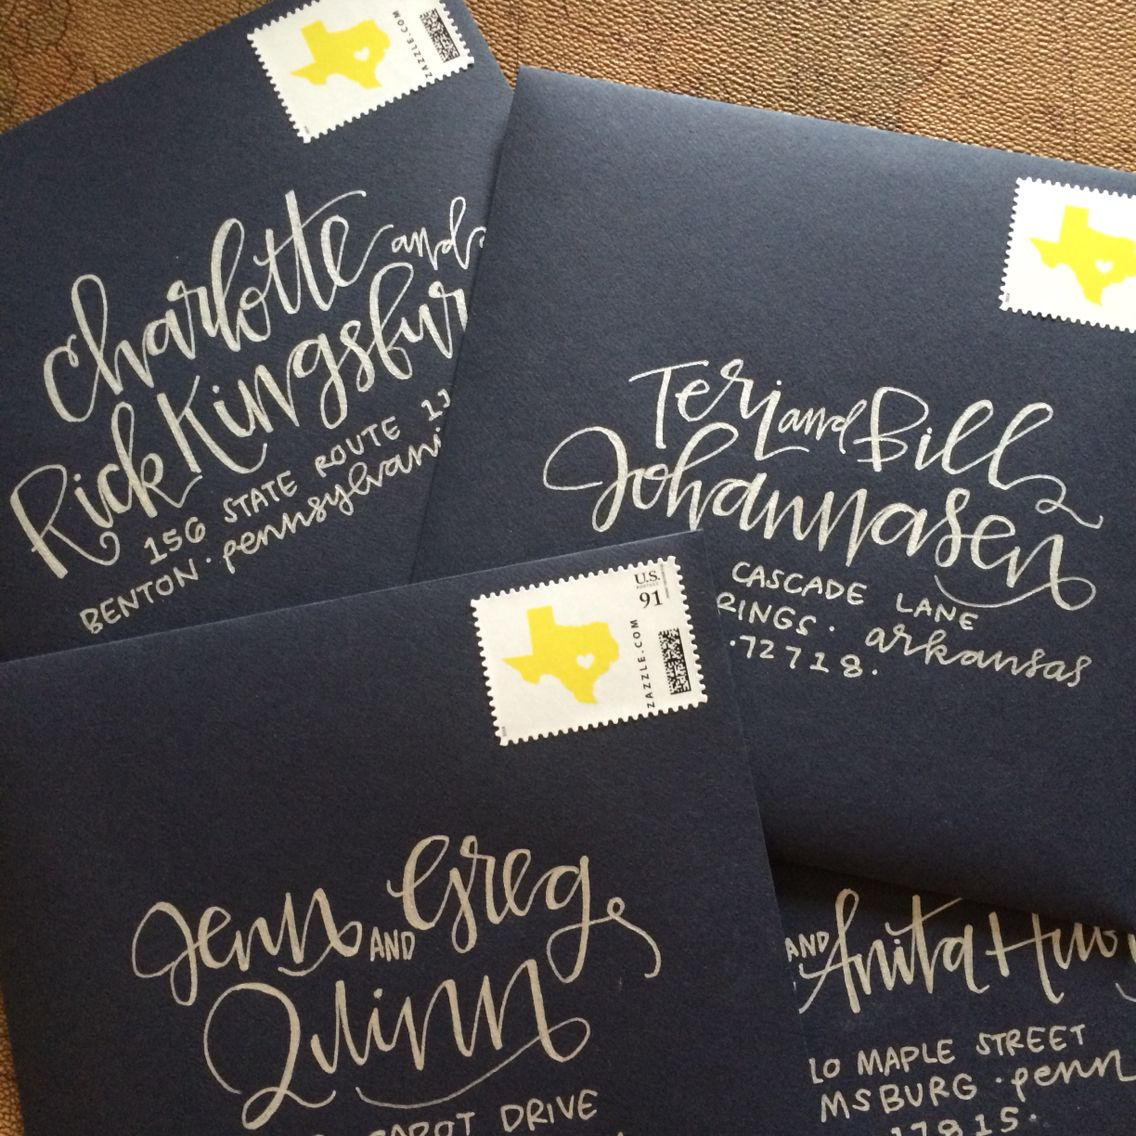 6x9 Wedding Invitation Envelopes: Envelope Addressing By Laurenish Design